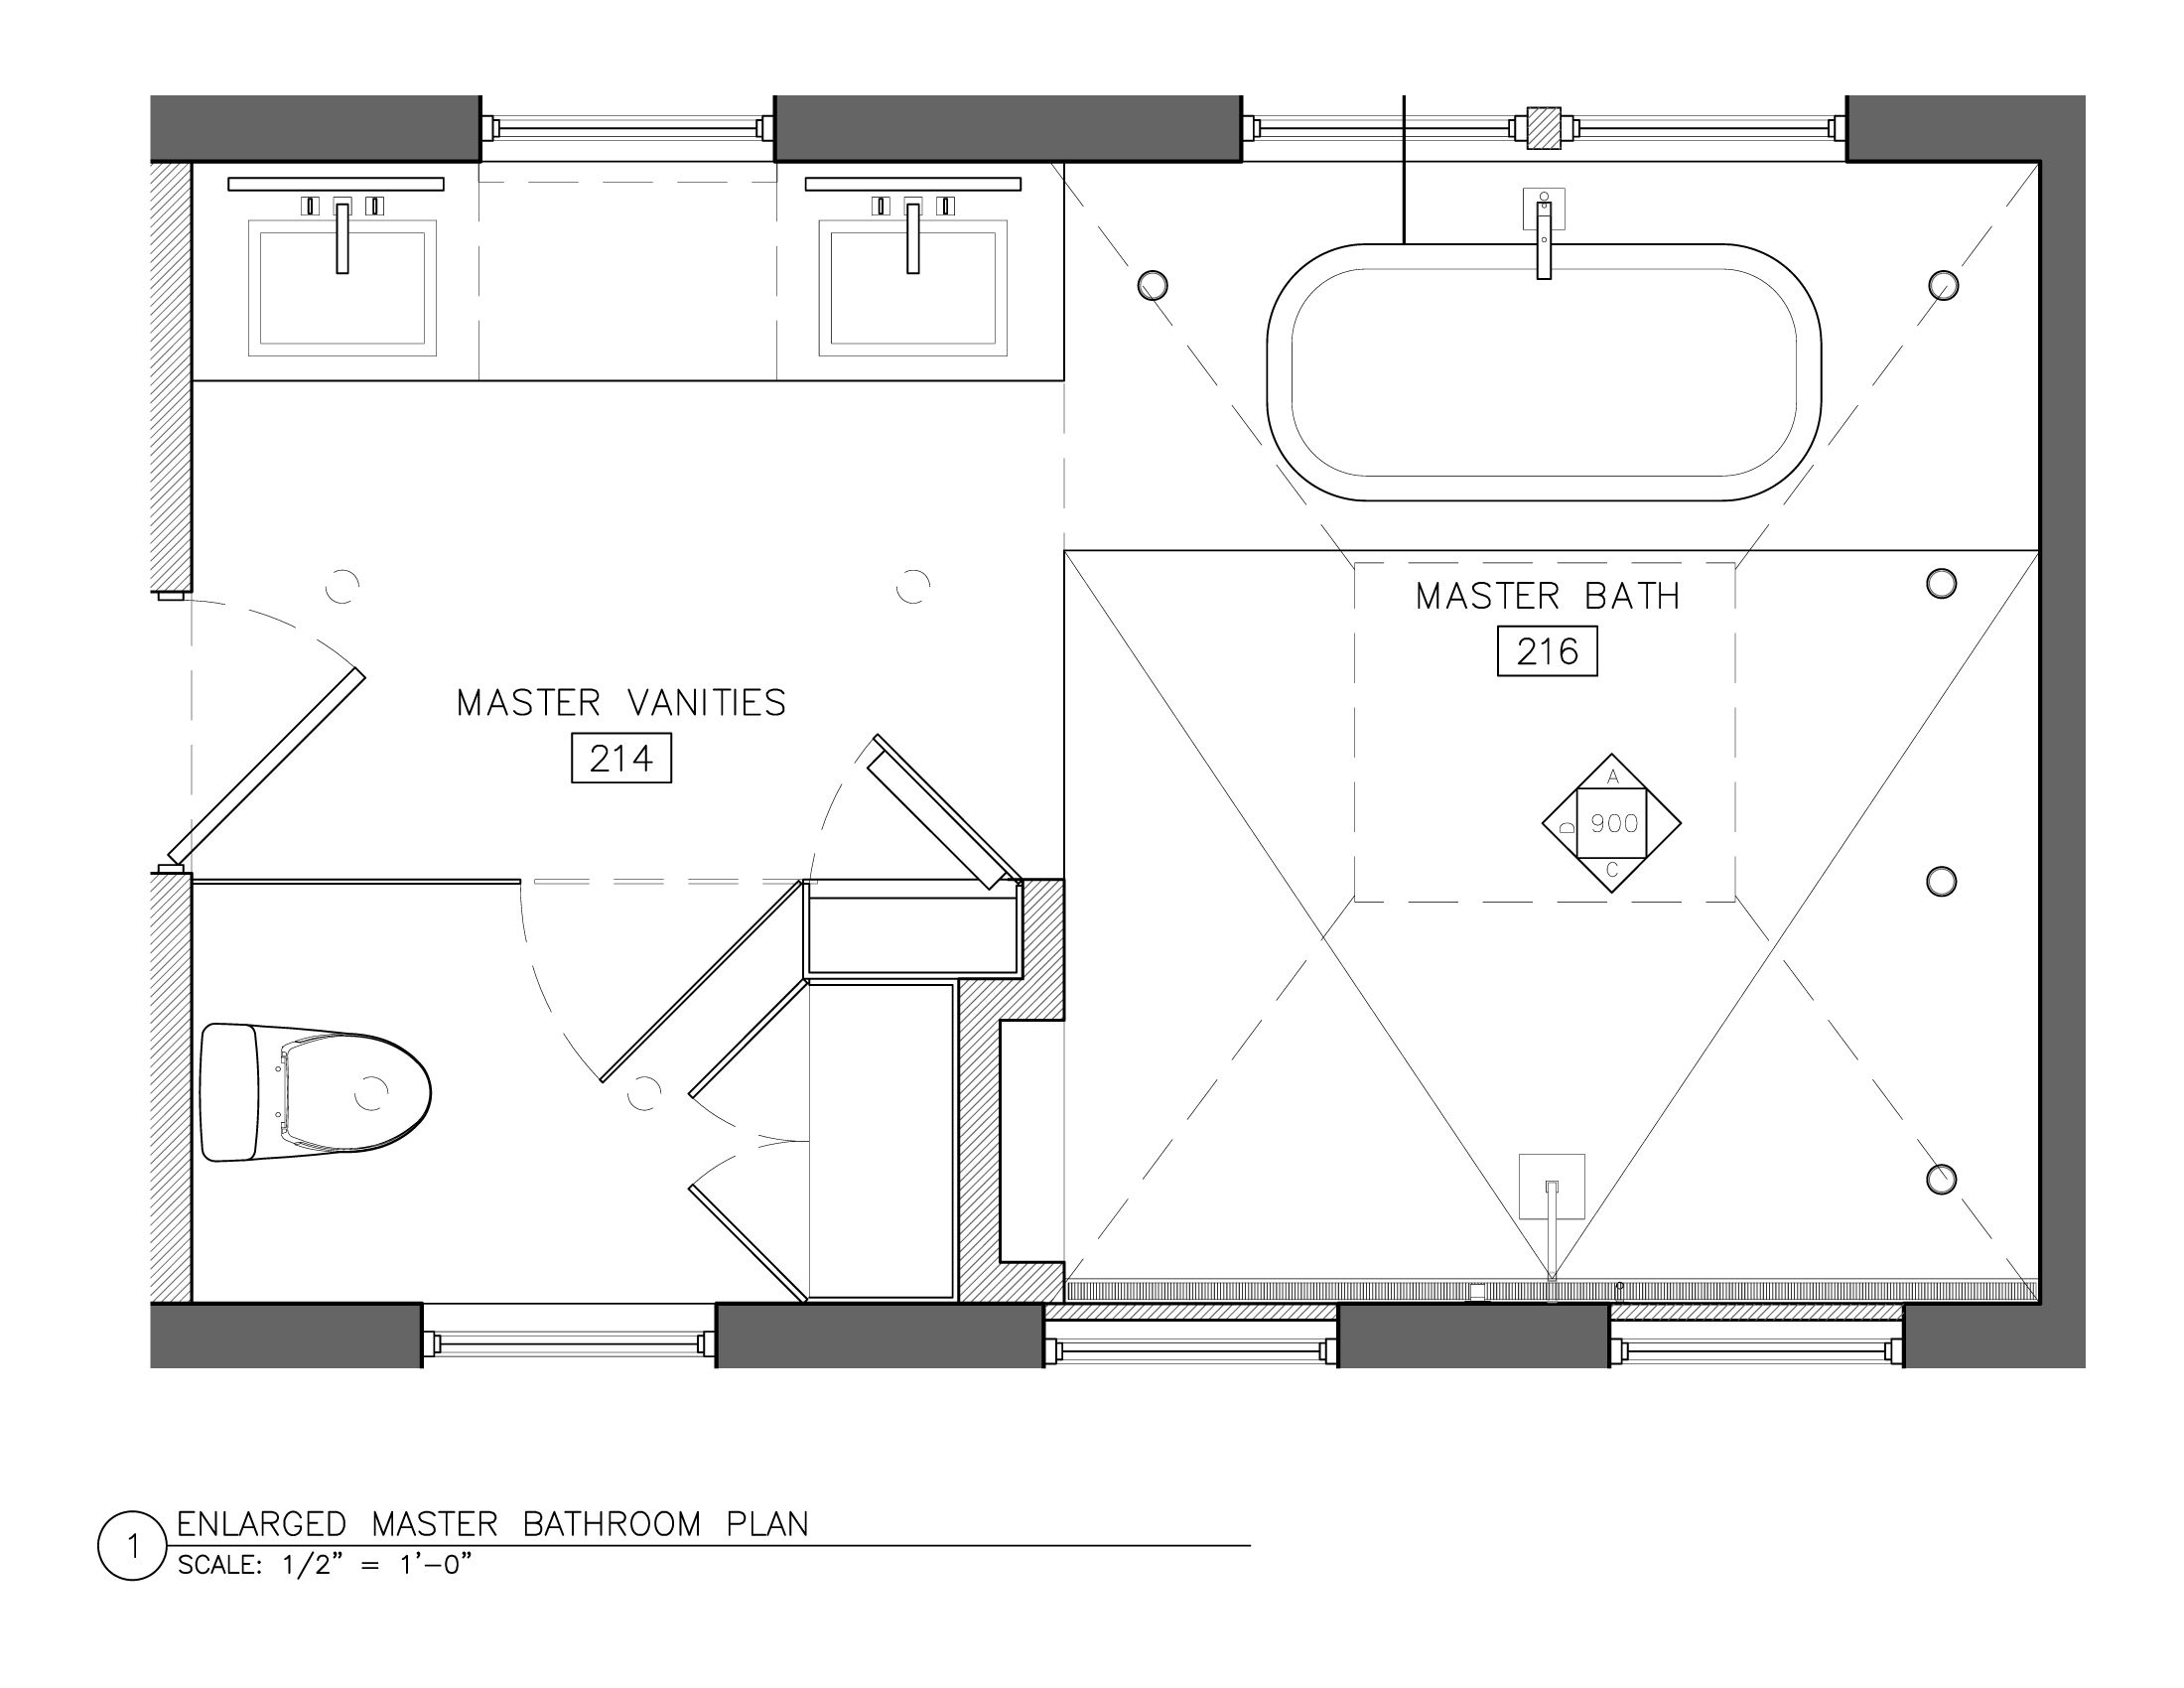 Bathroom Templates For Planning Small Master Bathroom Floor Plans The Entire Bathroom Is White